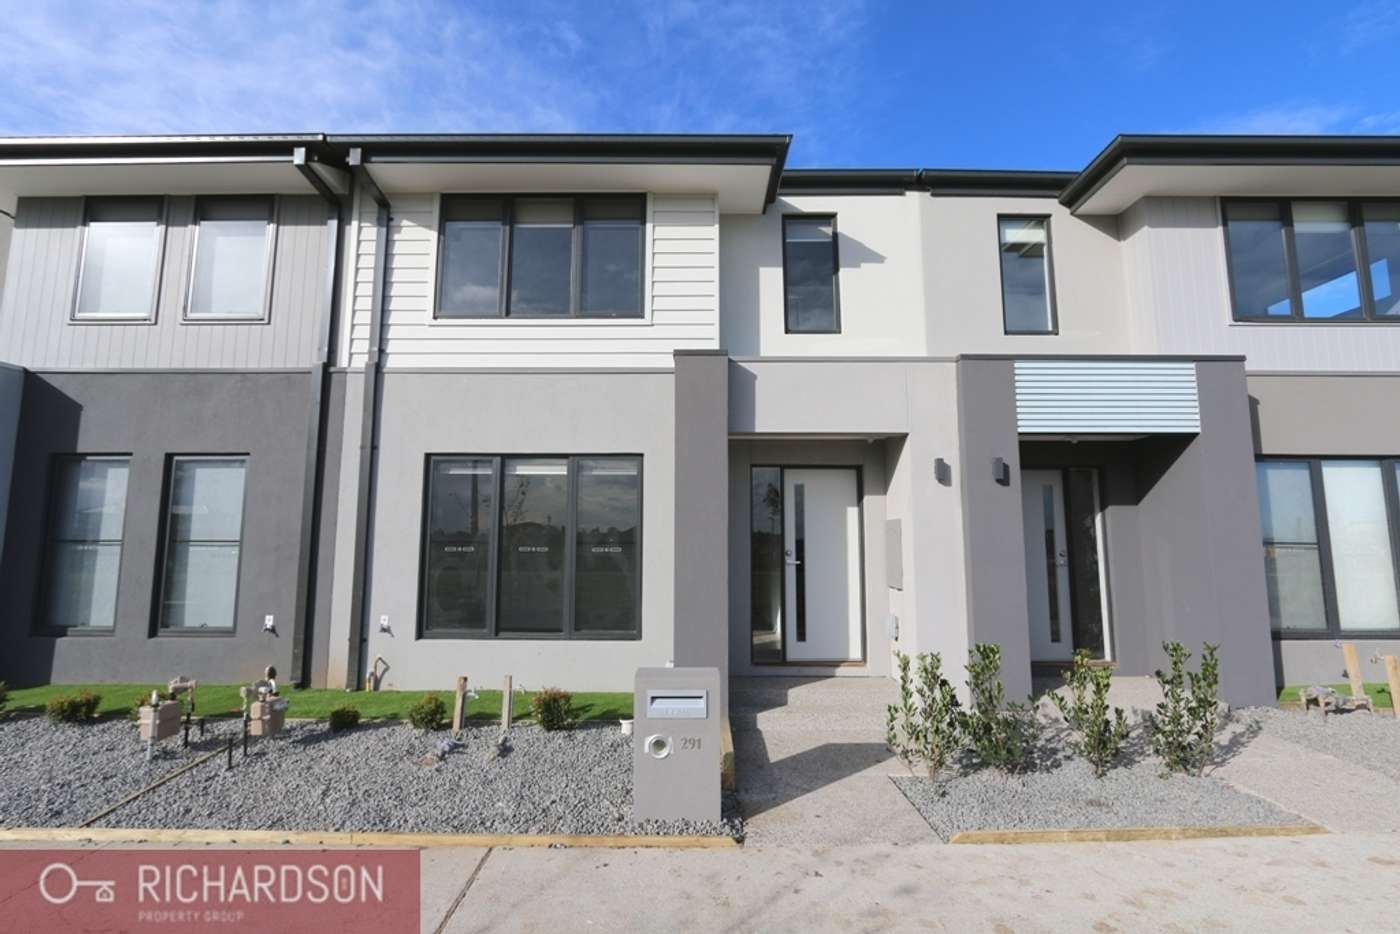 Main view of Homely townhouse listing, 291 Dunnings Road, Point Cook VIC 3030